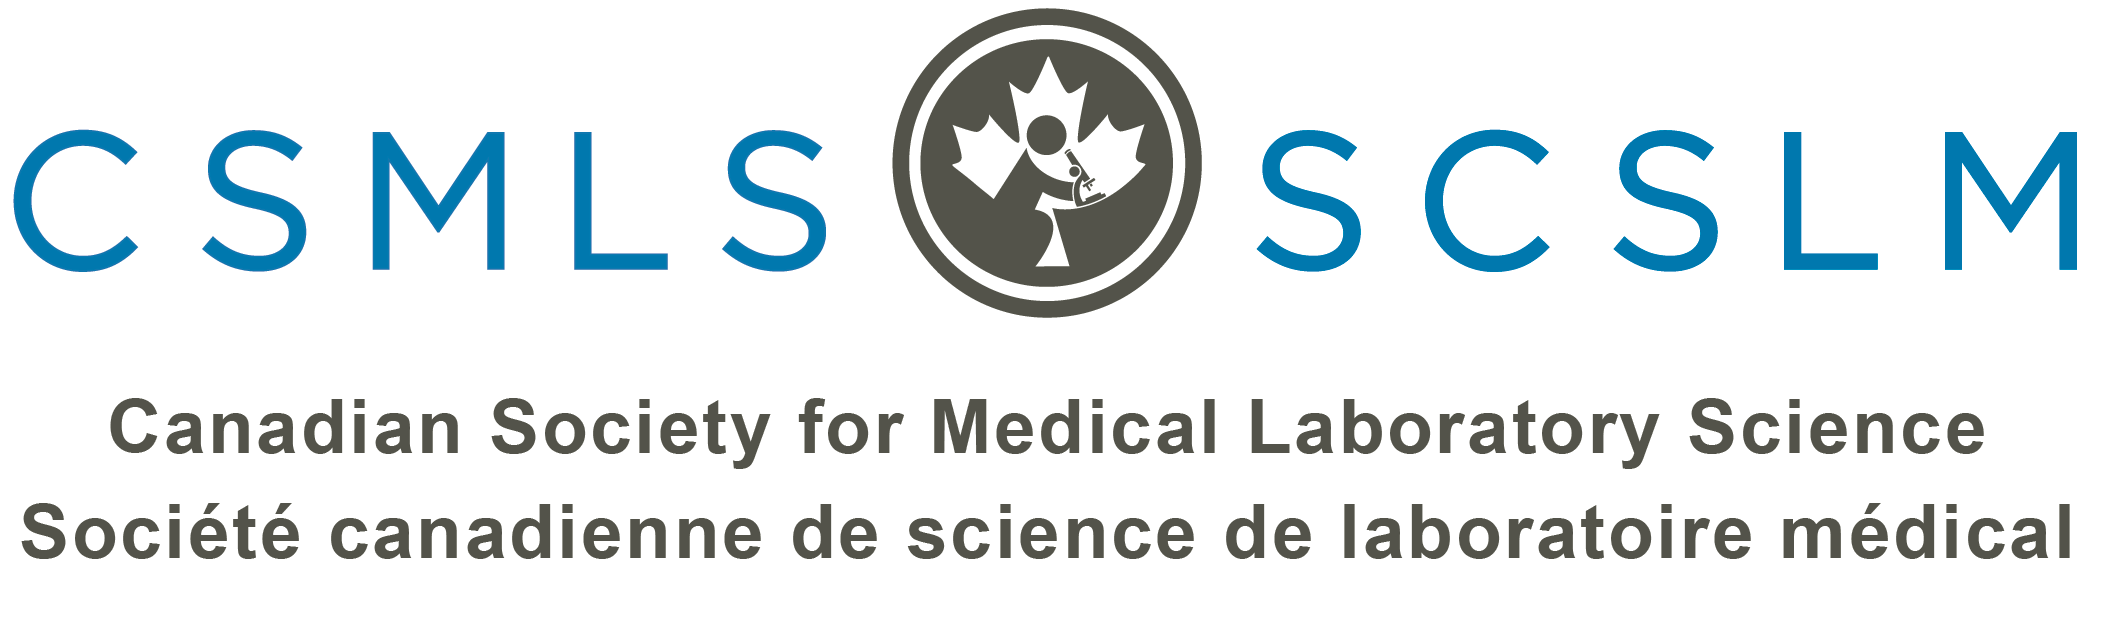 CSMLS_official_logo_1.png